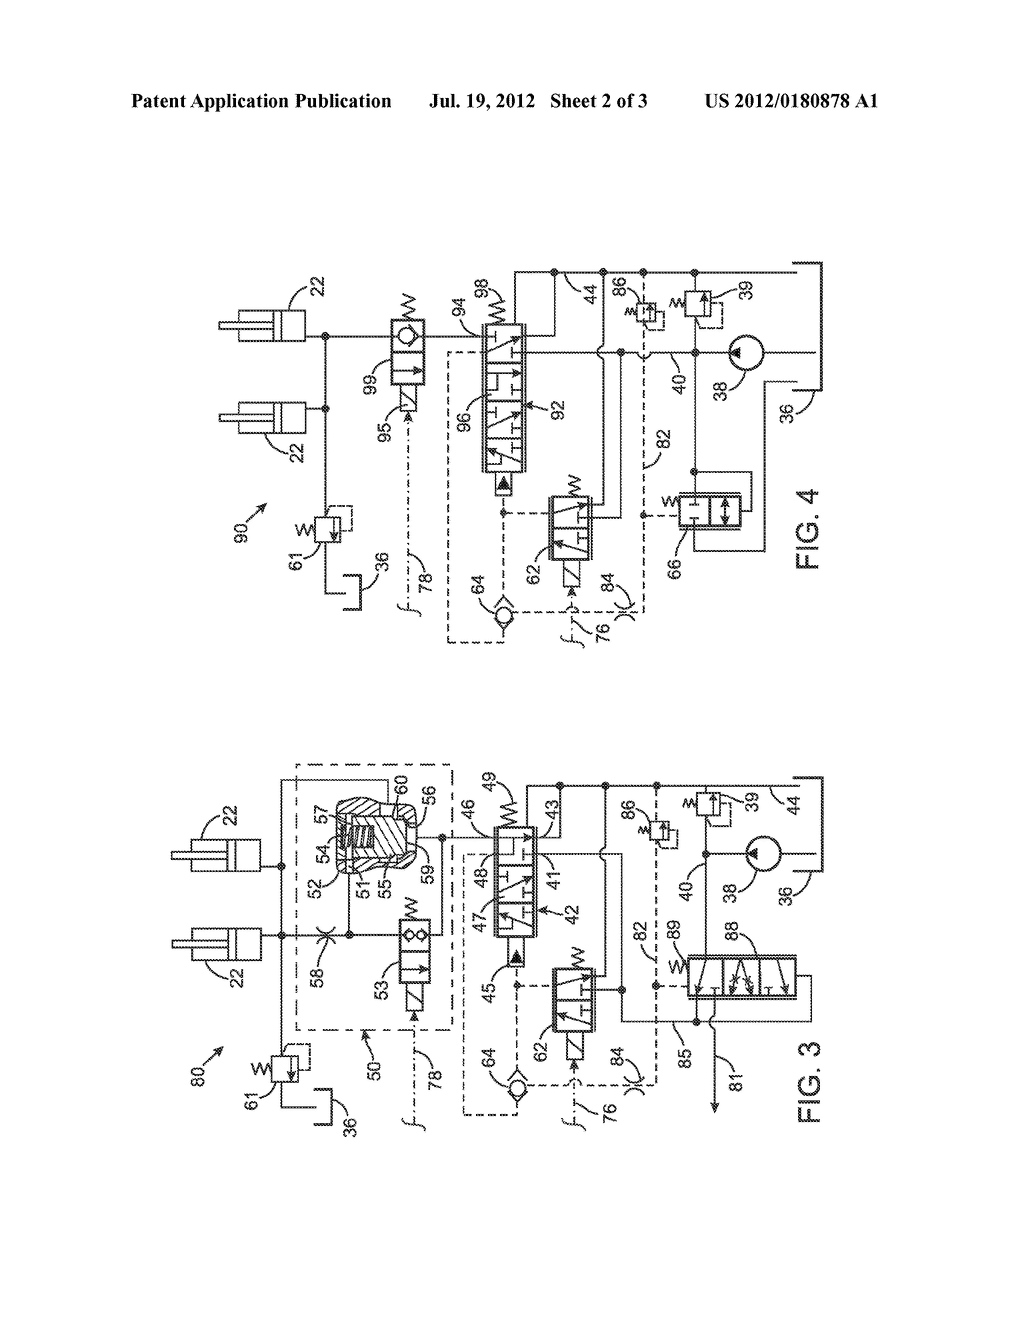 hight resolution of valve control valve circuit for operating a single acting hydraulic cylinder diagram schematic and image 03